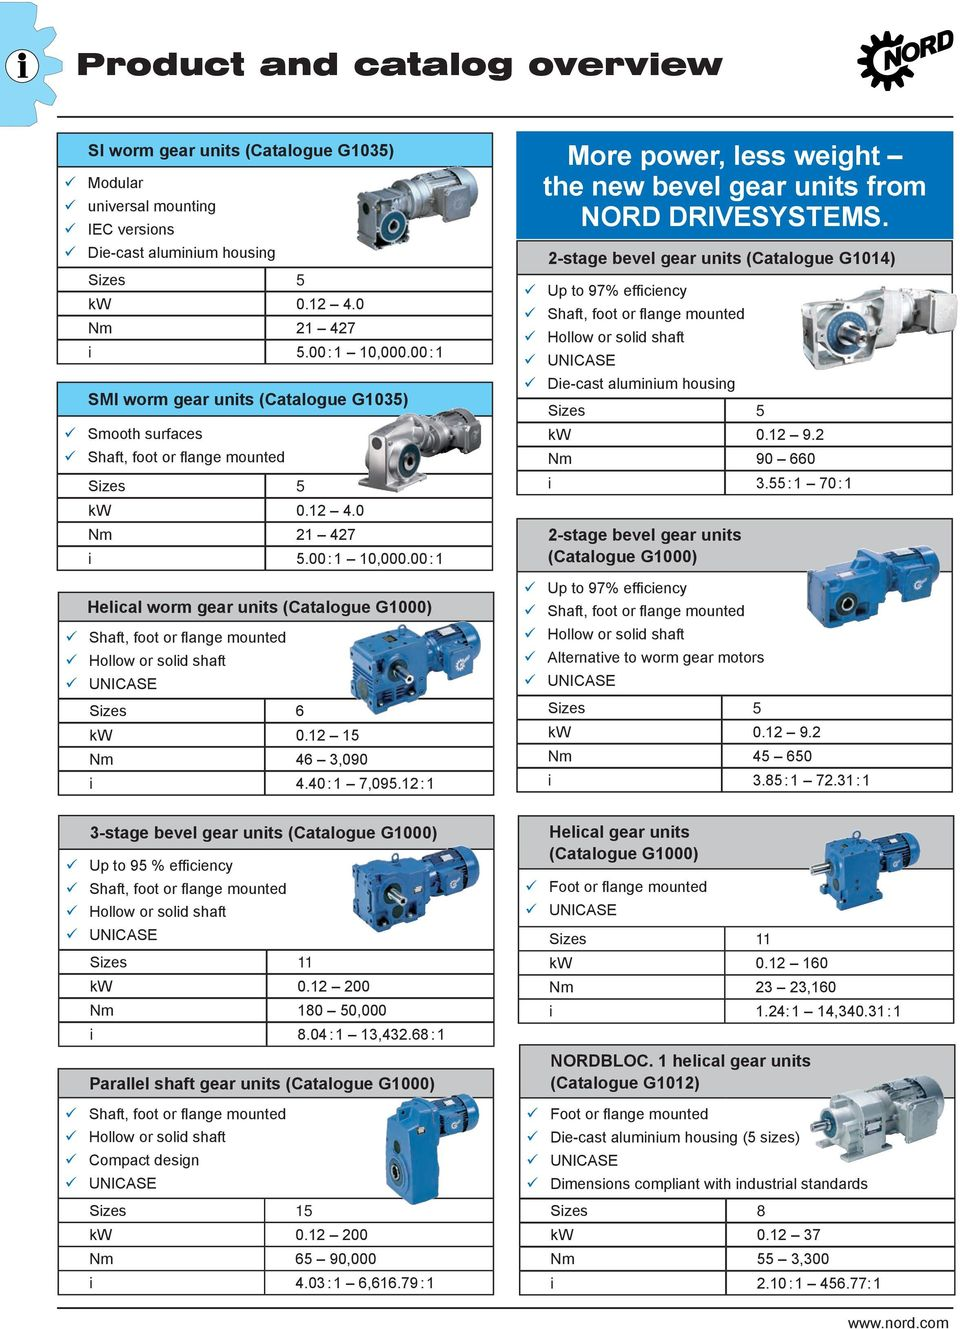 00:1 Helical worm gear units (Catalogue G1000) Shaft, foot or flange mounted Hollow or solid shaft UNICASE Sizes 6 kw 0.12 1 Nm 46 3,090 i 4.40 :1 7,09.